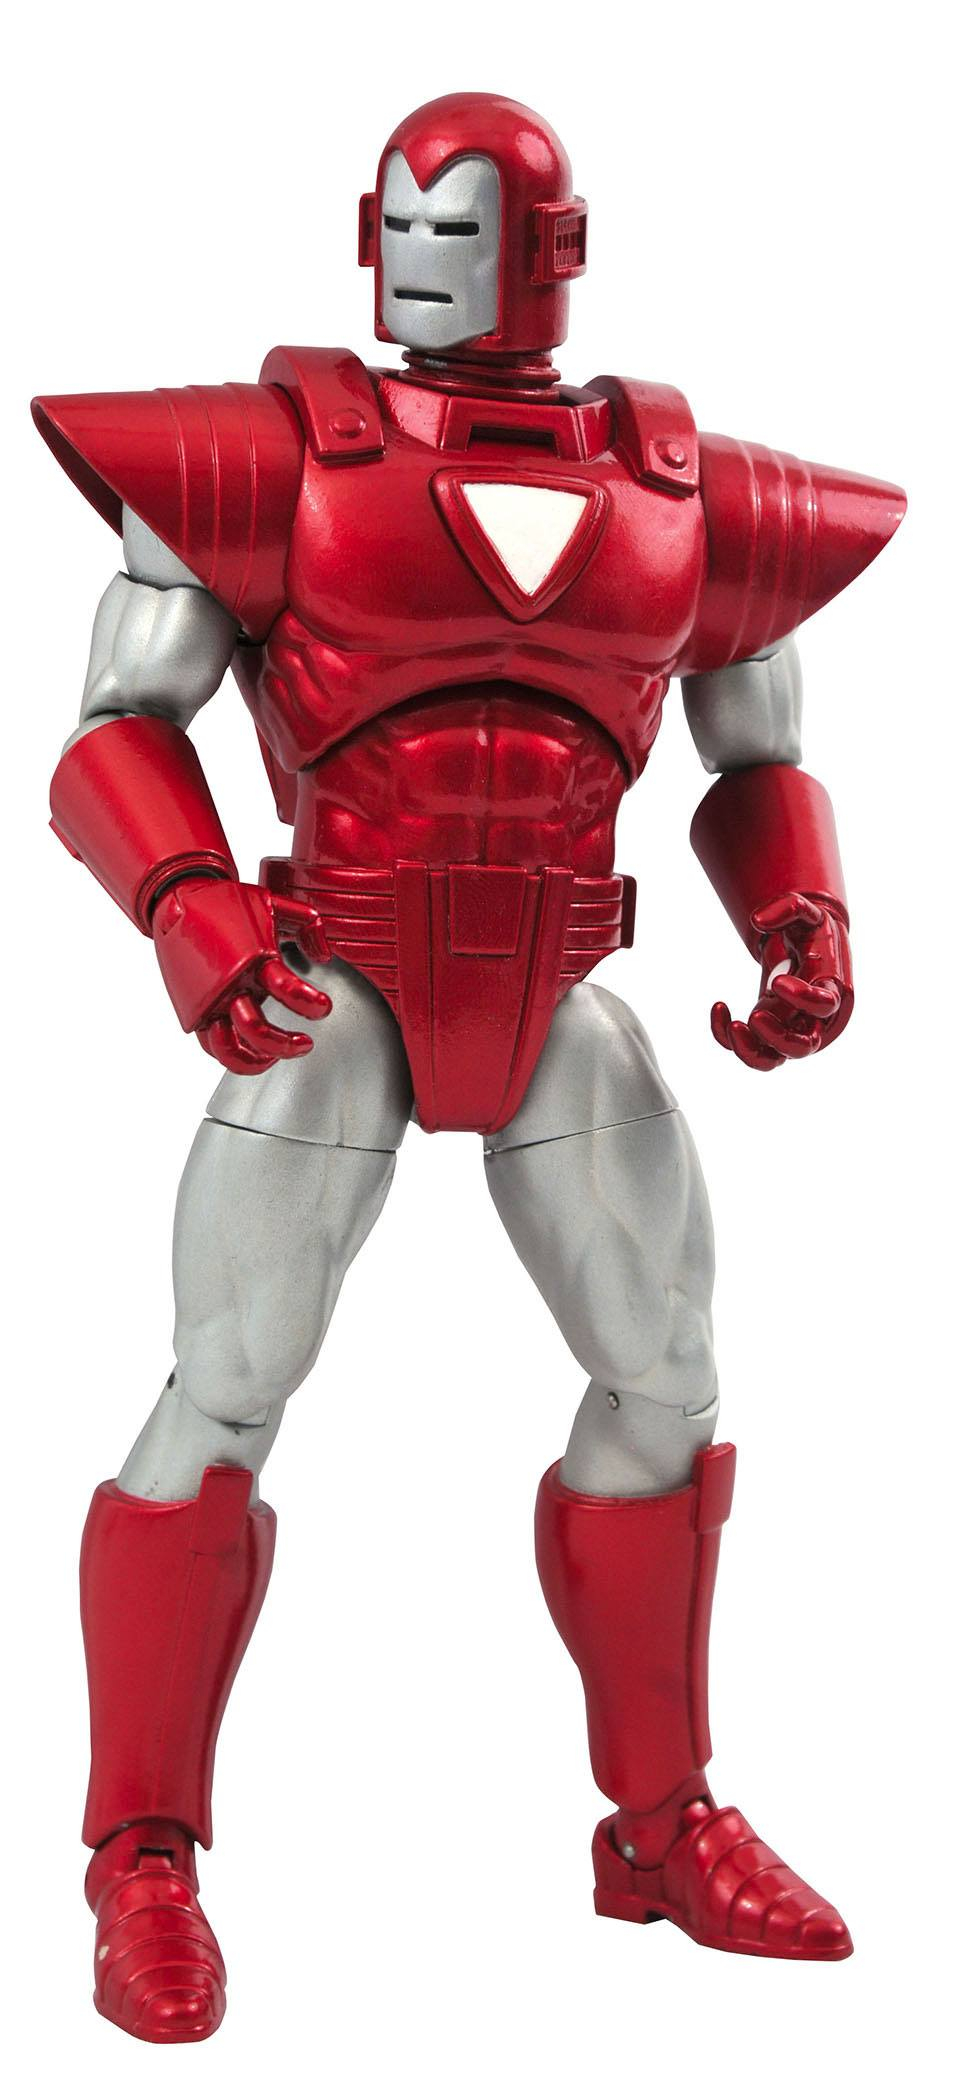 *PREORDER* Marvel Select Action Figure: IRON MAN - SILVER CENTURION by Diamond Select